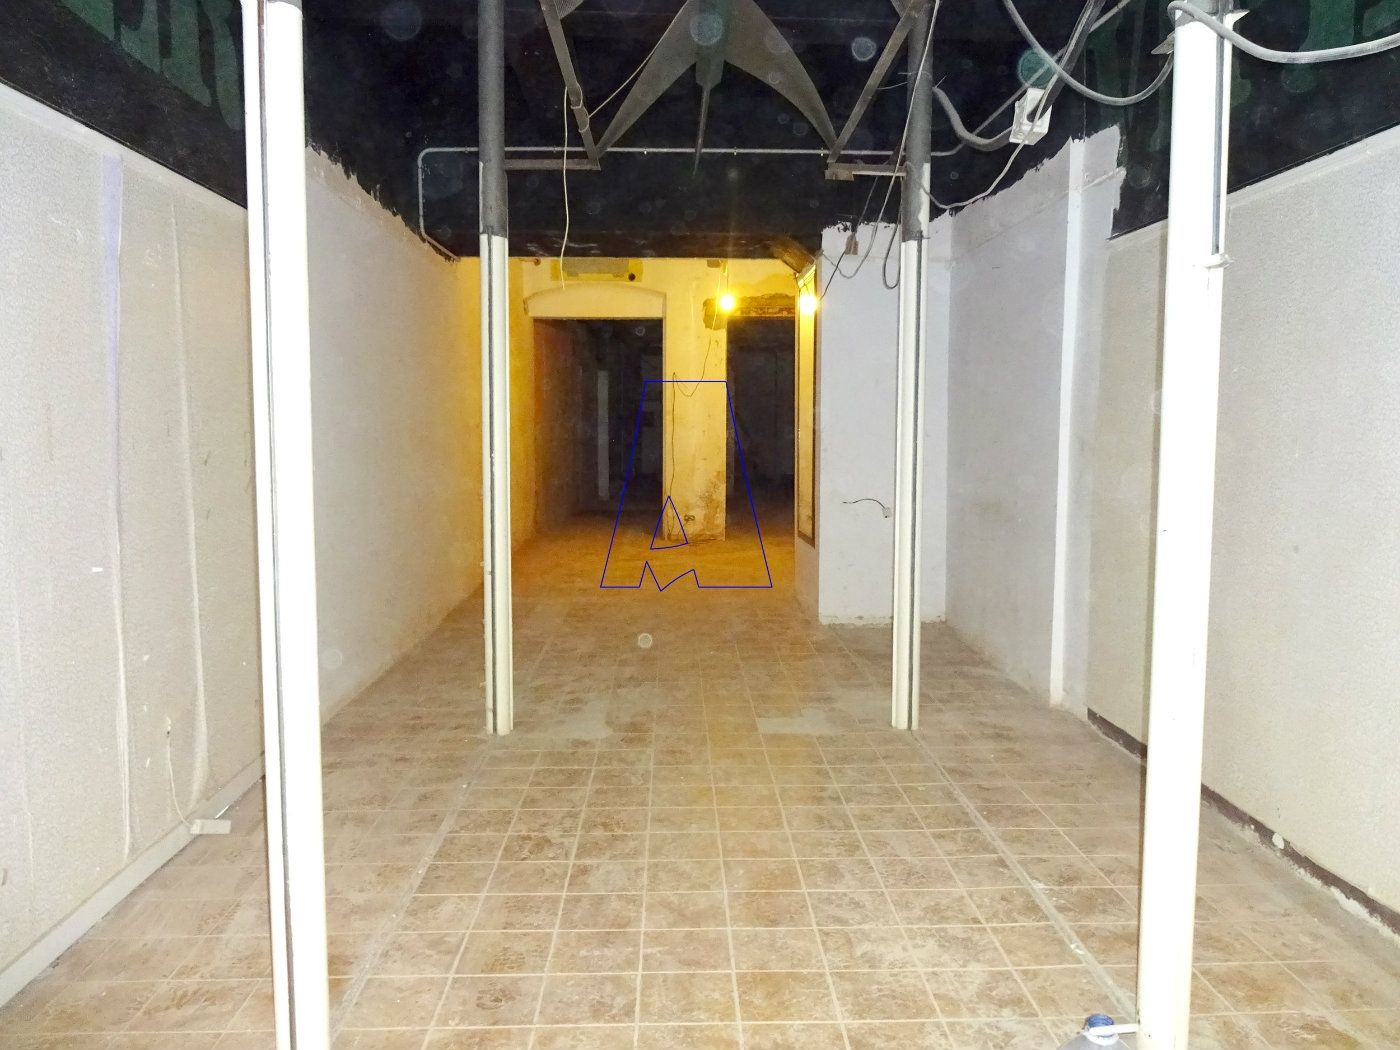 Lloguer Local Comercial en Carrer sant josep, 40. Local comercial en exclusiva.